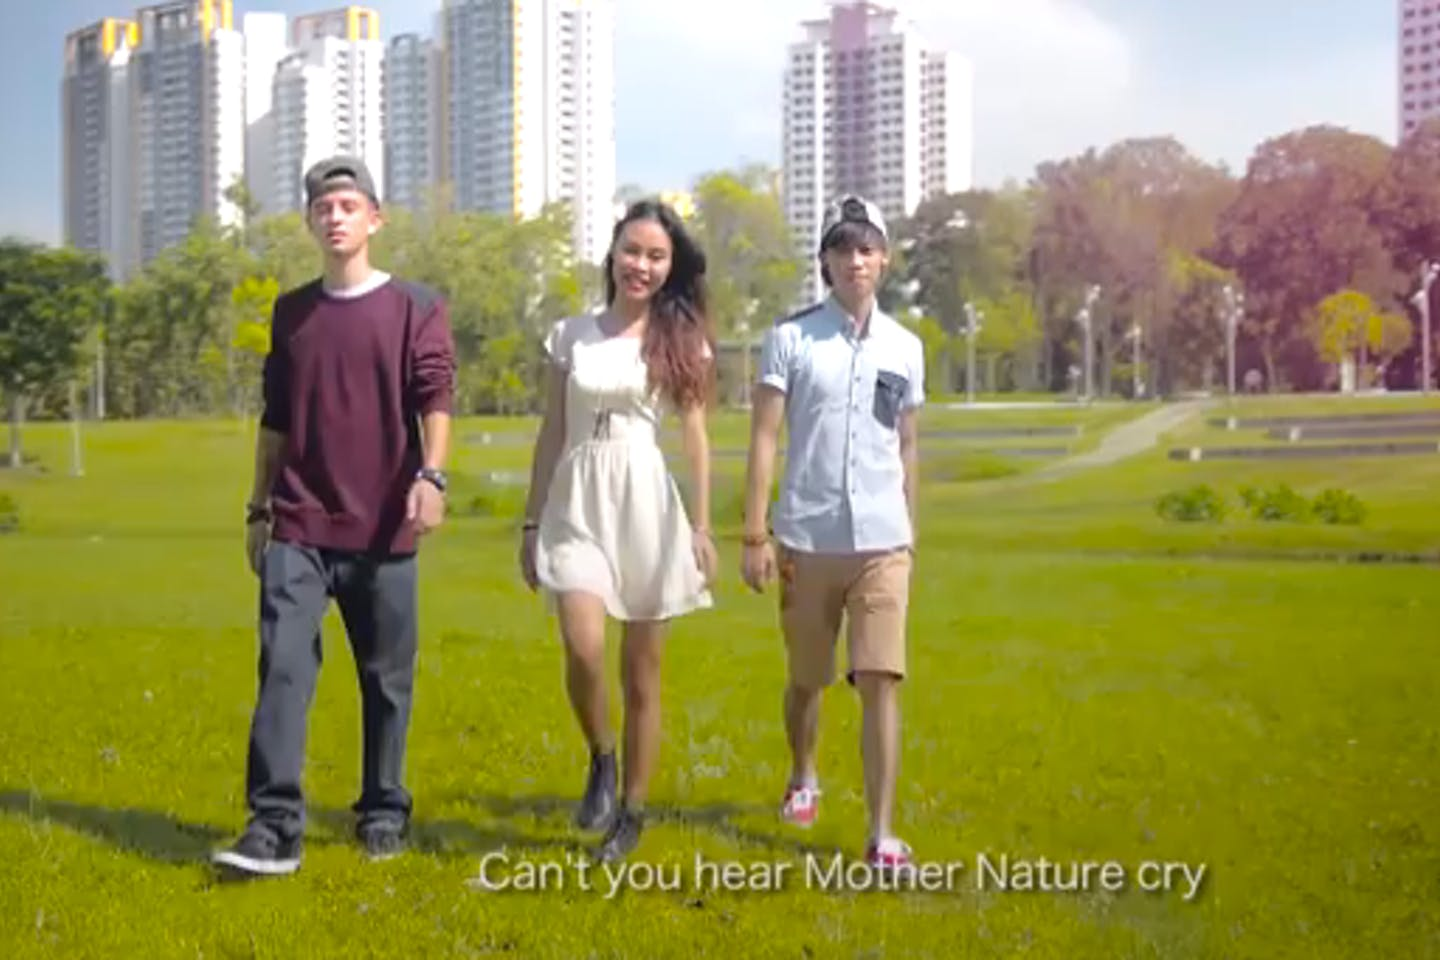 Mother Nature's Cry music video